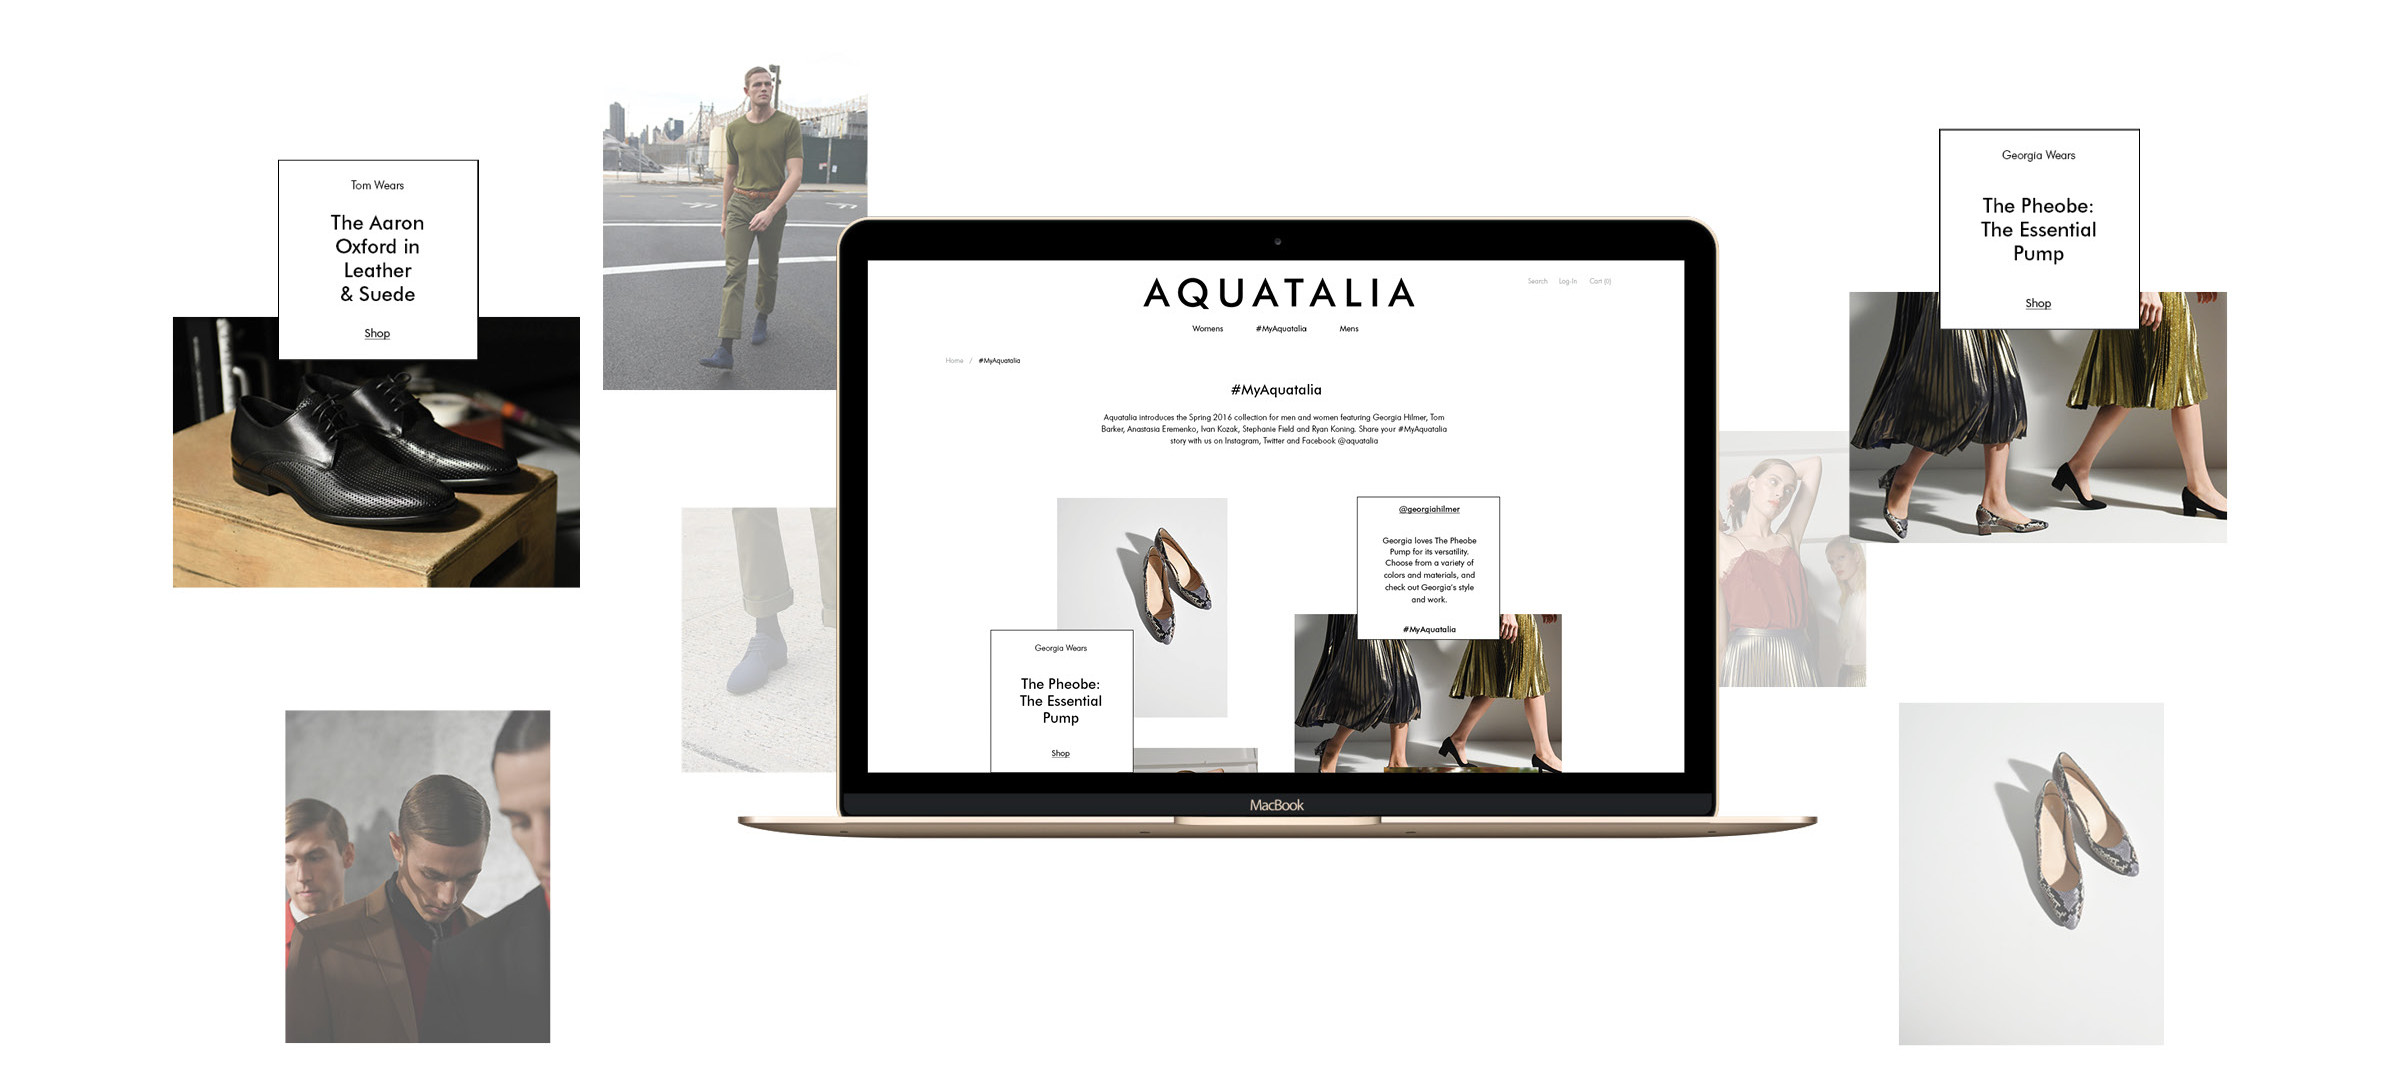 #MyAquatalia social campaign created by DTE with behind-the-scenes look into the brand's trendsetter